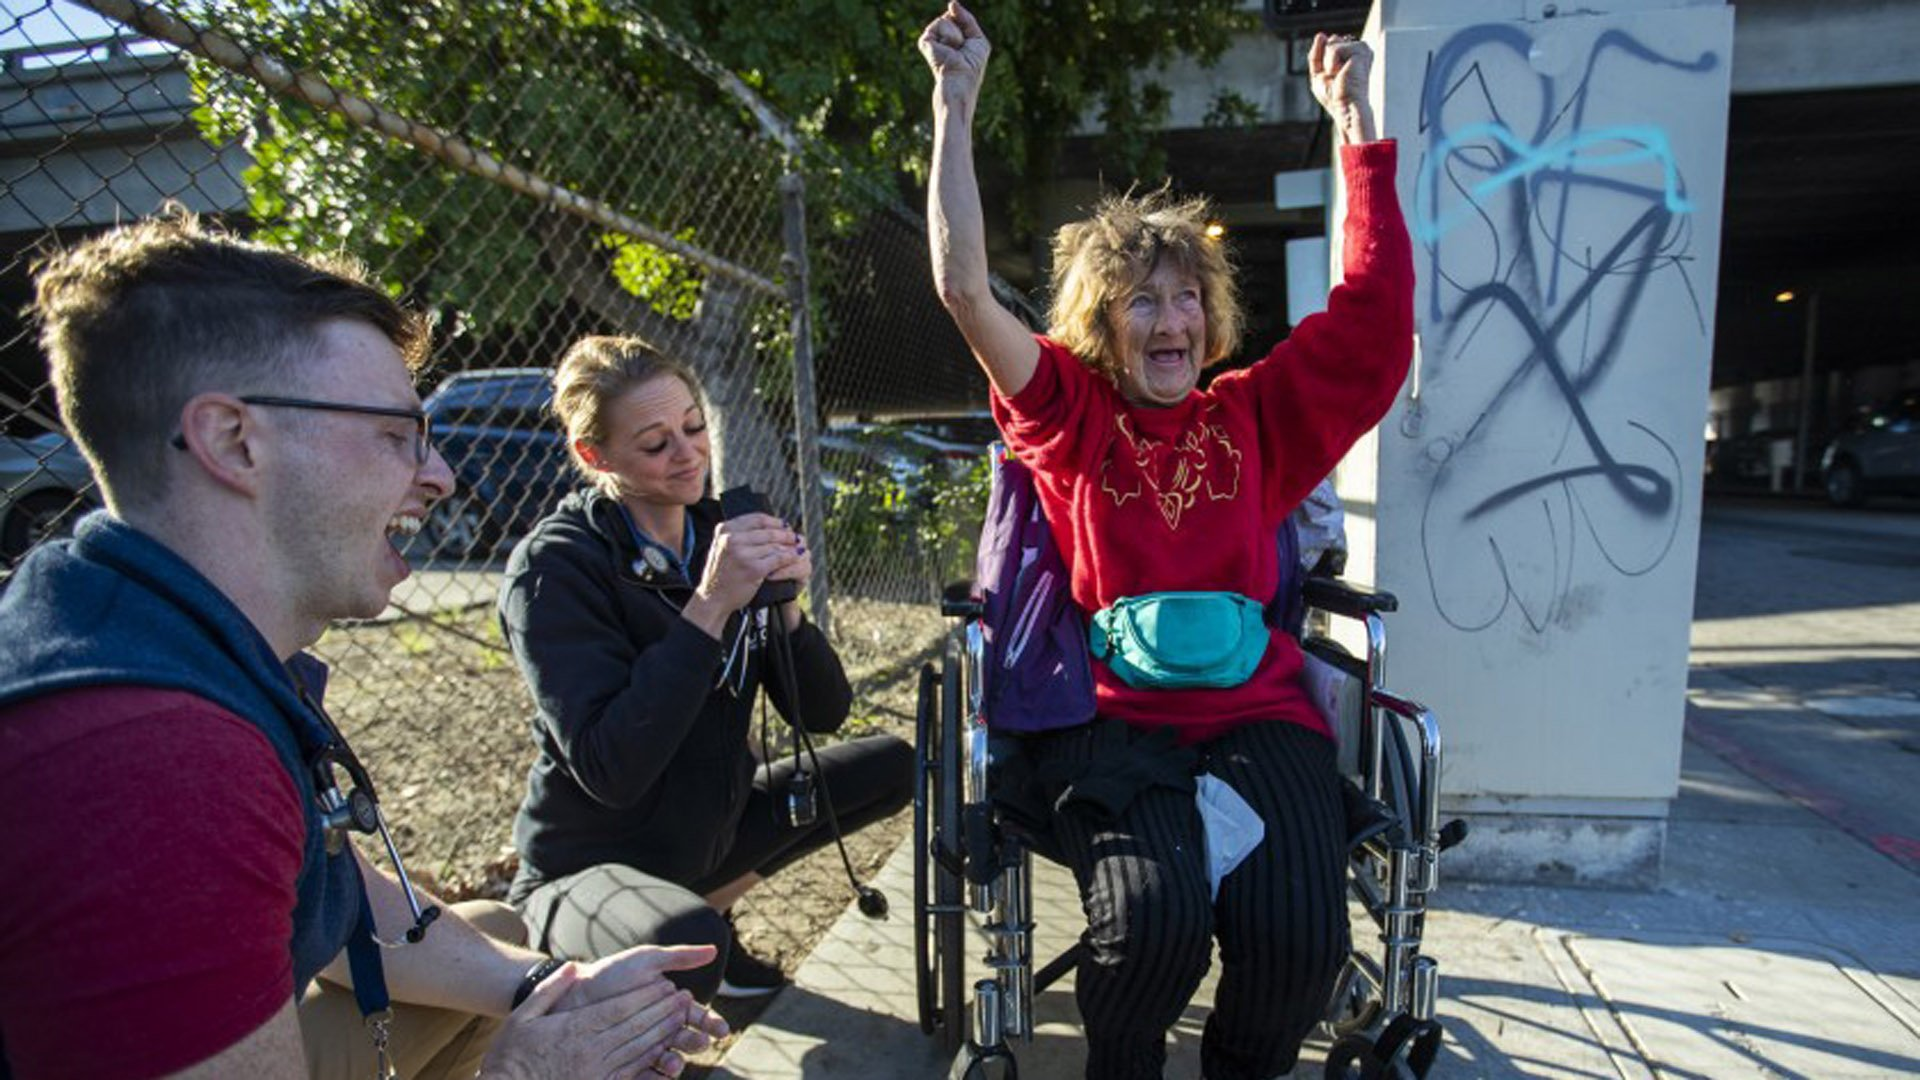 Homeless patient Dianna Hill, 61, celebrates after Dr. Michael Stefanowicz, left, and nurse Gabrielle Johnson finished monitoring her blood pressure.(Credit: Allen J. Schaben/Los Angeles Times)